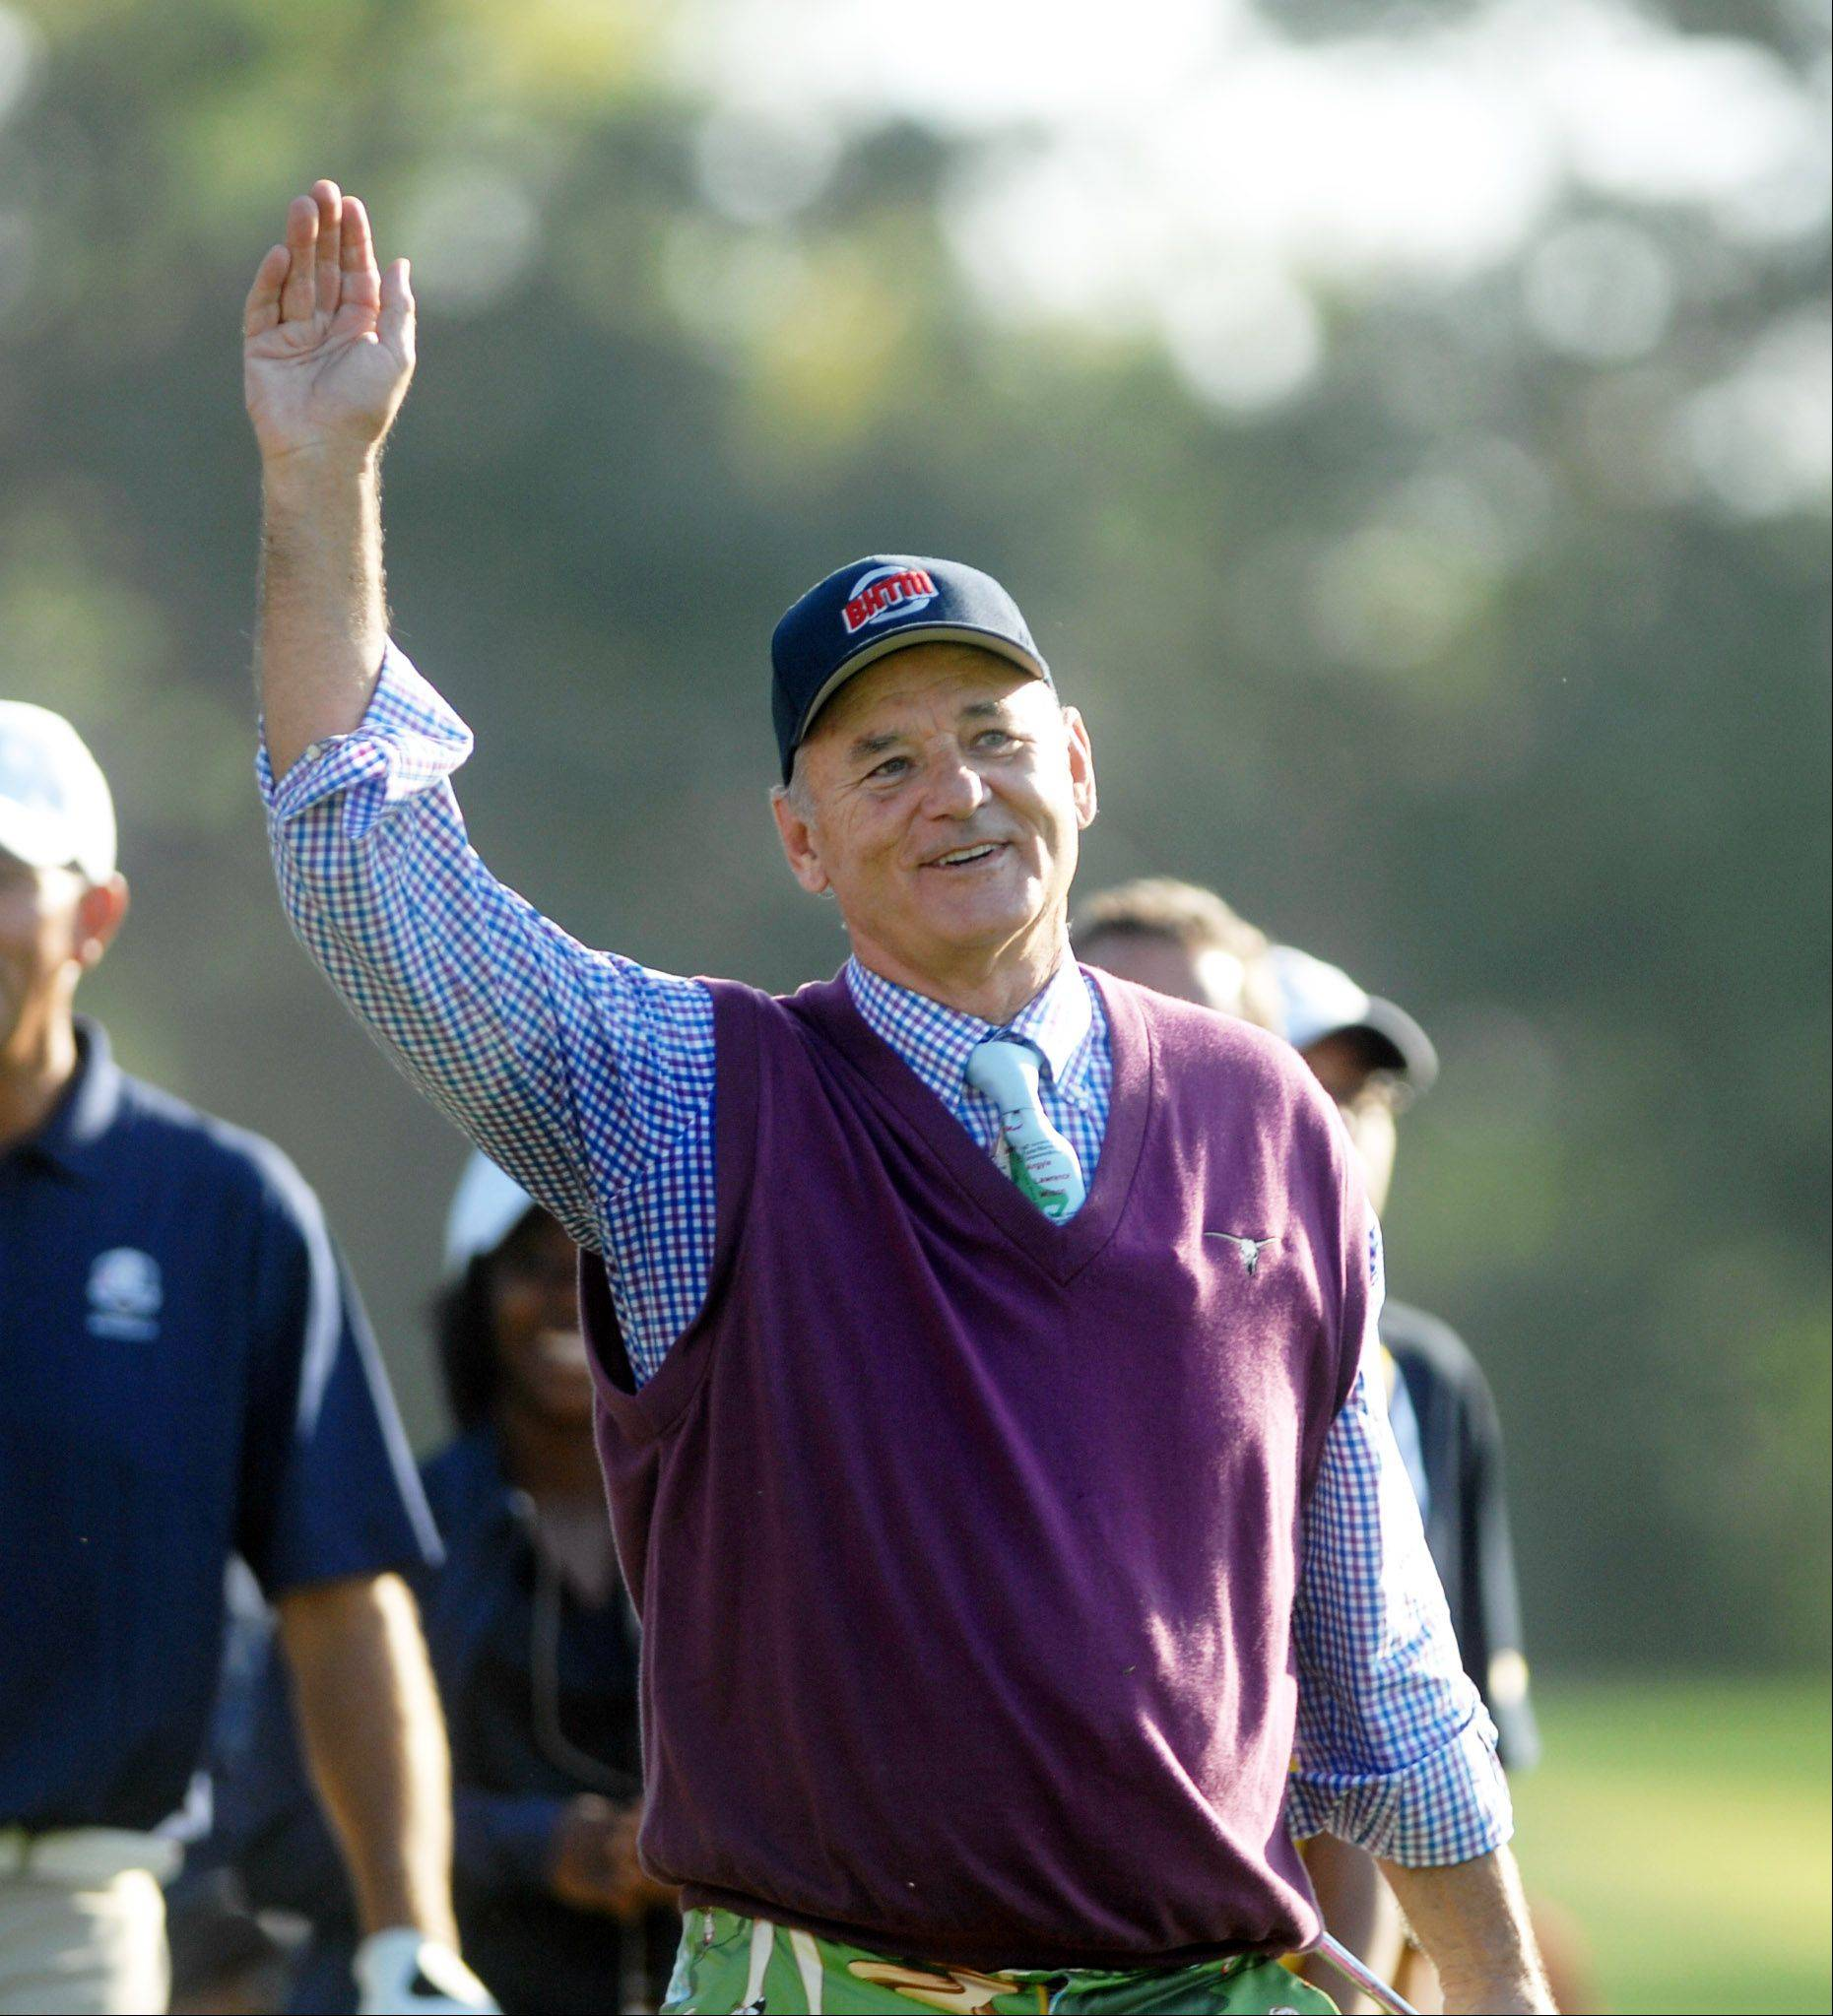 Movie Star Bill Murray waves goodbye to his fans as he leaves the 7th hole. This took place during the Celebrity Scramble Exhibition Tuesday at the 39th Ryder Cup in Medinah.